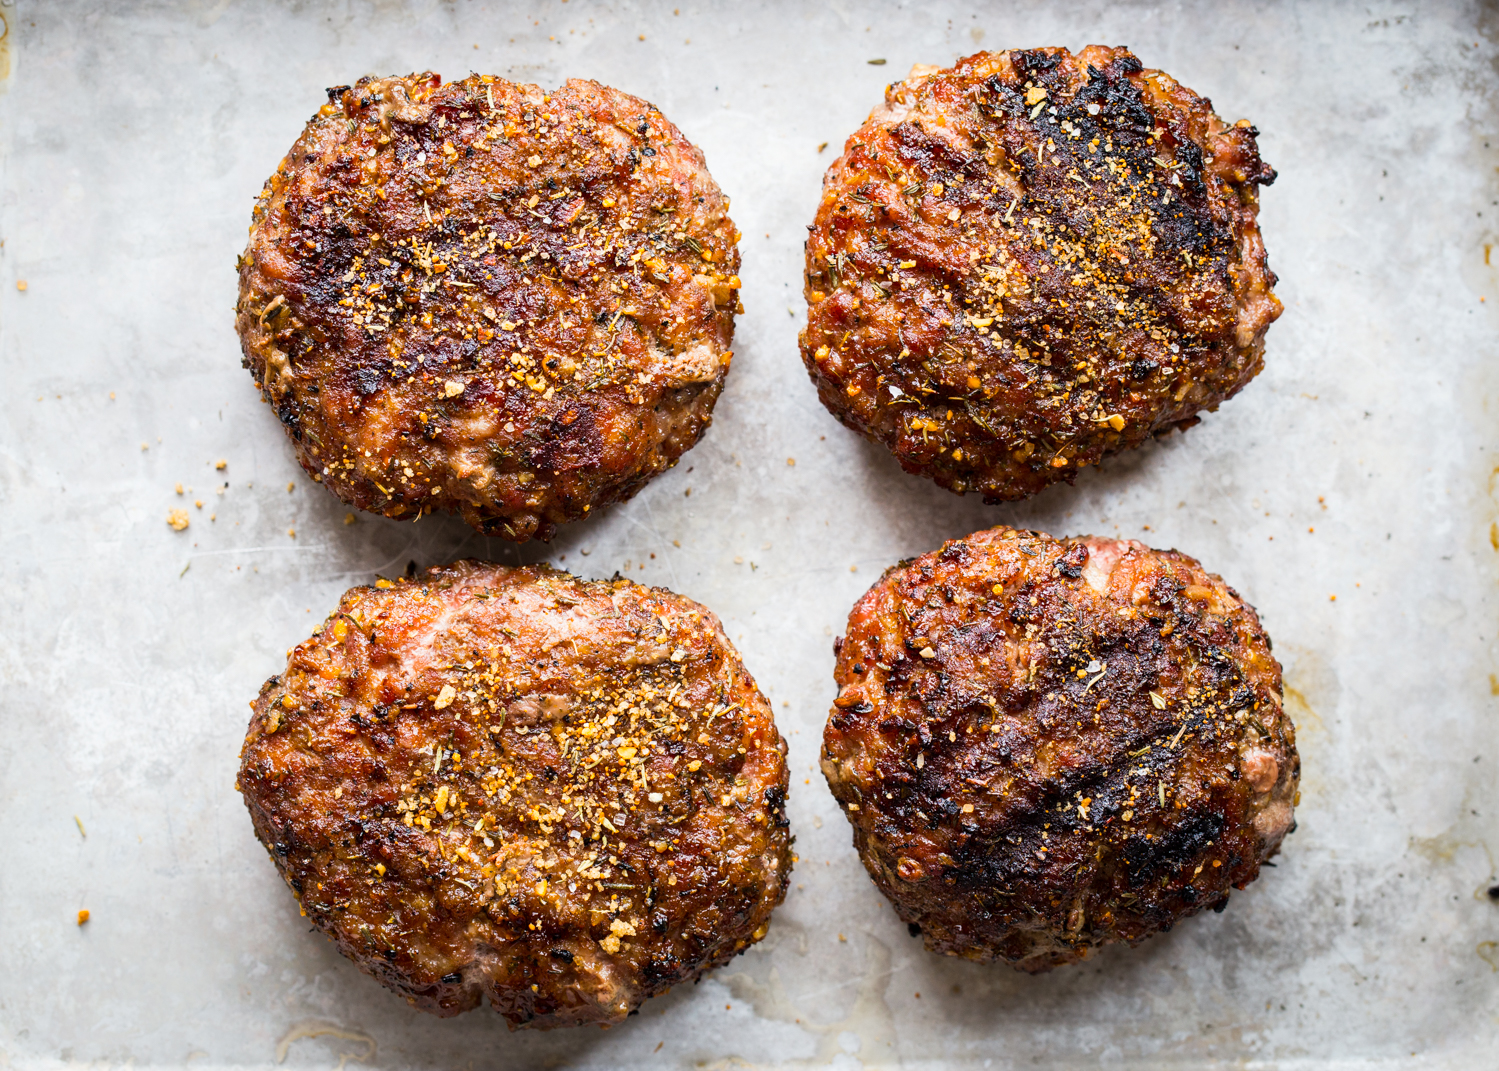 Smoky Maple & Sage Breakfast Pork Burgers made with ground pork and a kicking' seasoning rub!